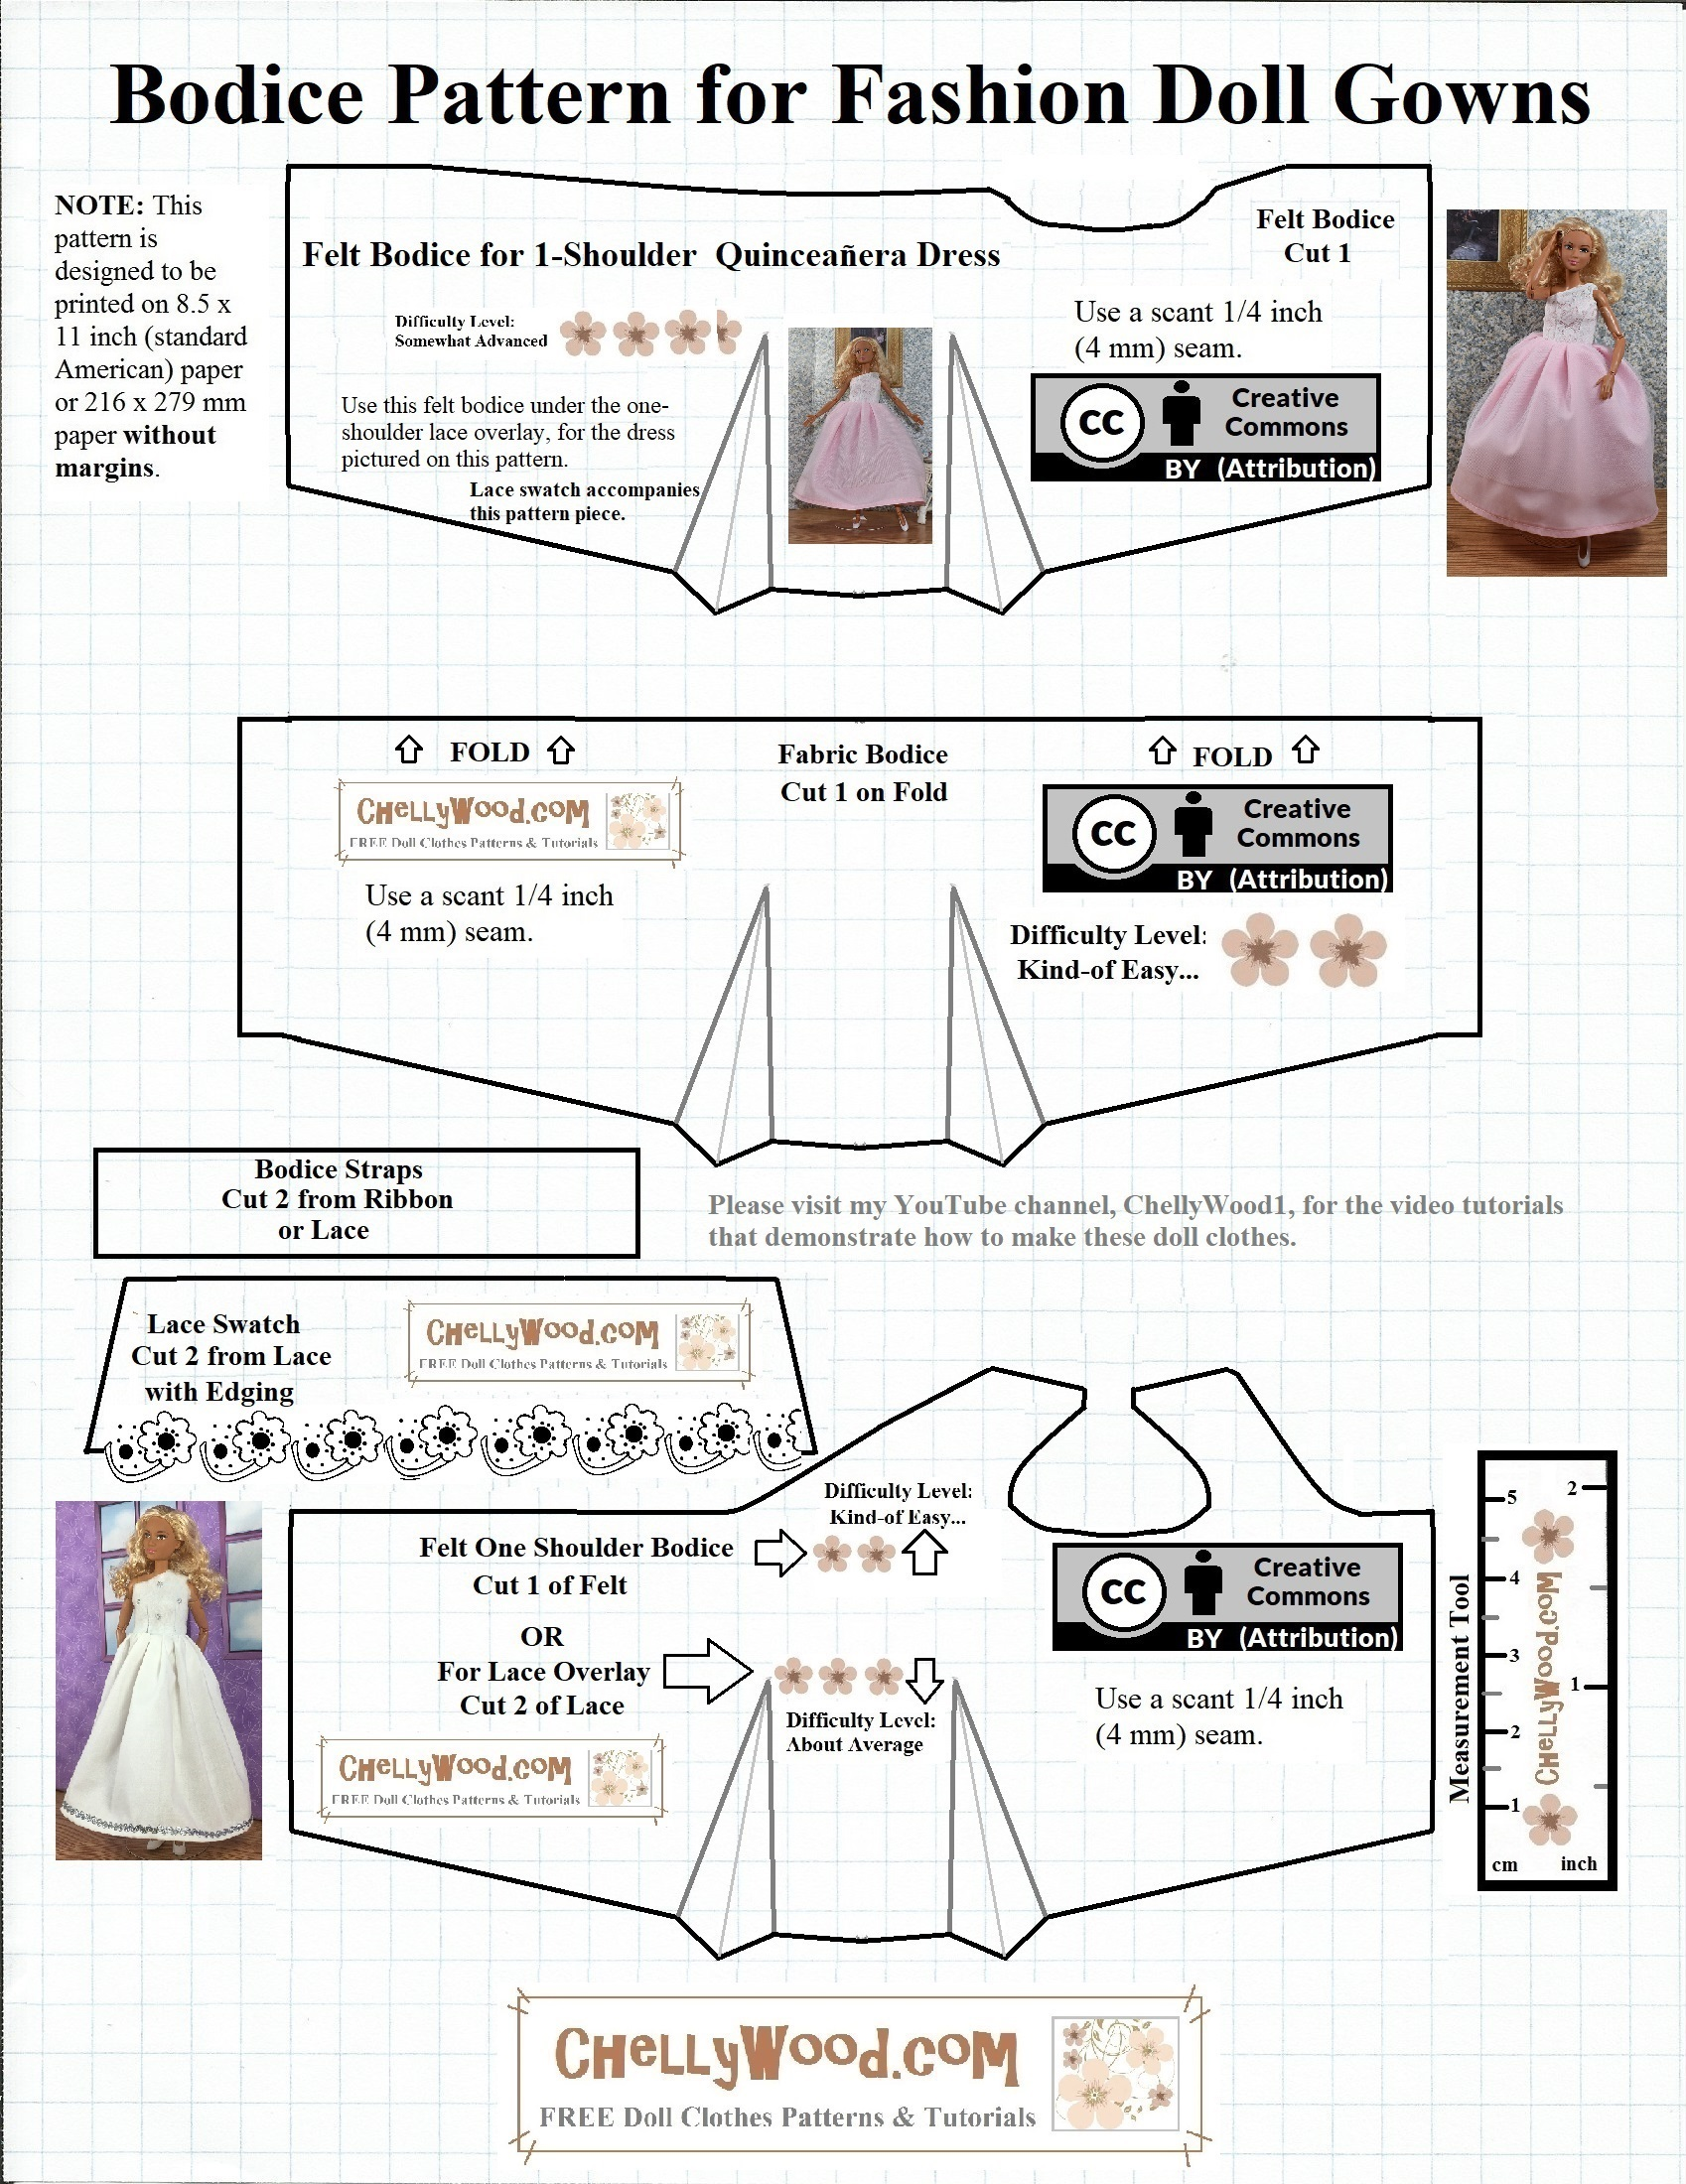 Daily patterns chelly wood wedding prom quince dress bodice pattern free and printablemfogelsongplease visit chellywood for free printable jeuxipadfo Gallery